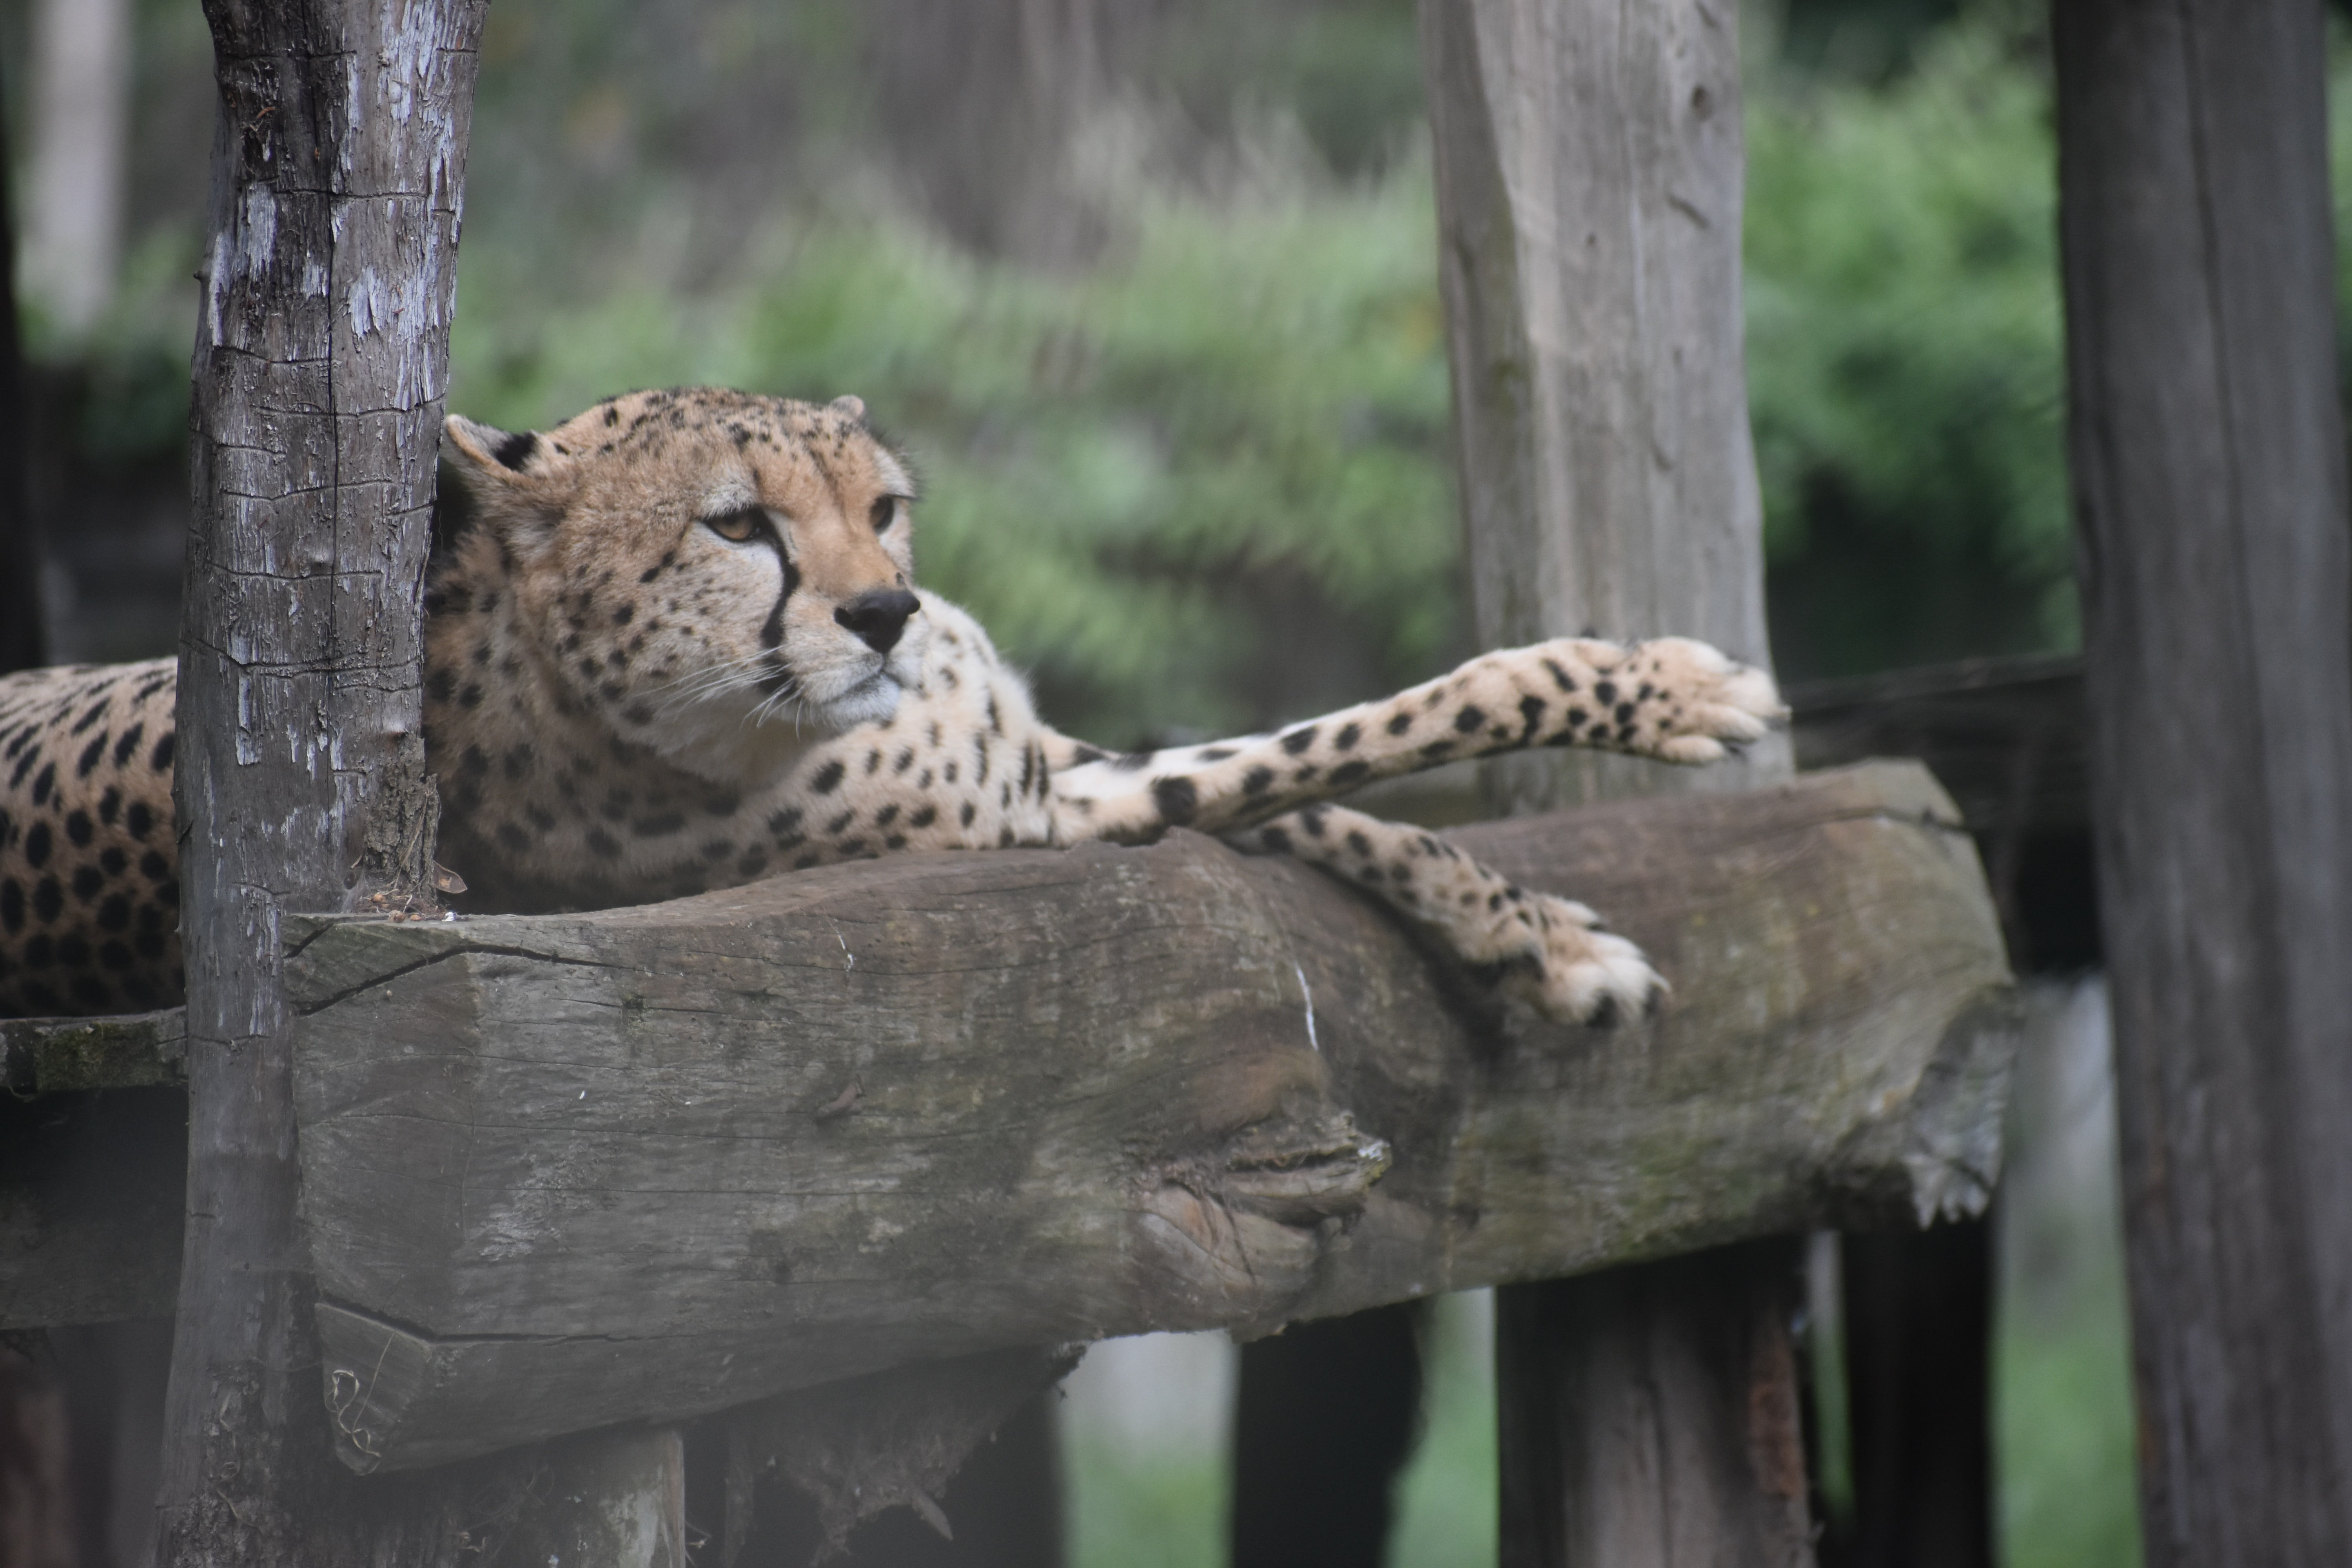 cheetah laying down on wooden surface